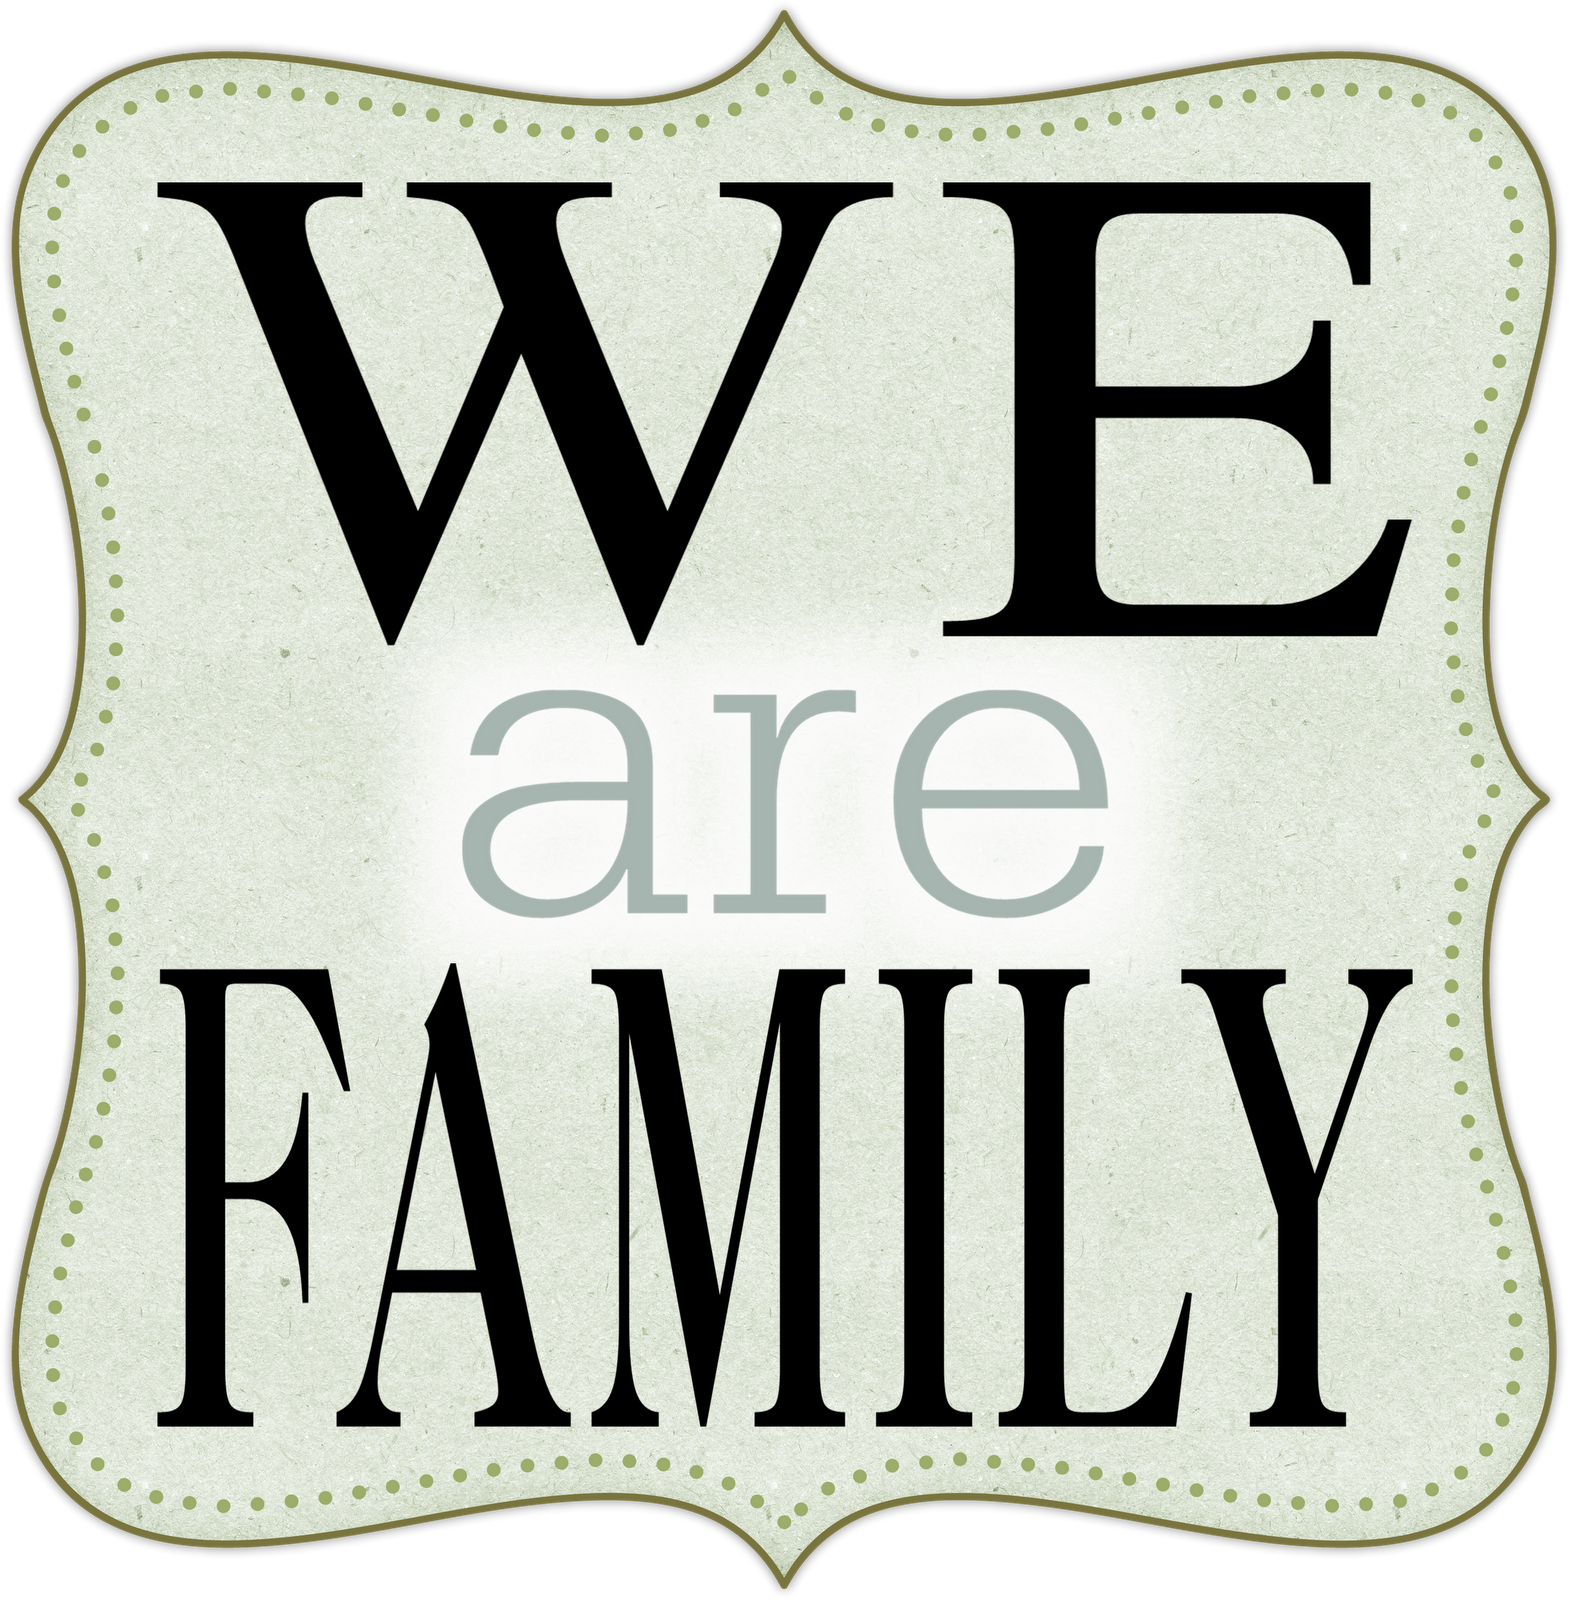 The Bell Family Reunion 2015 There There is Unity and